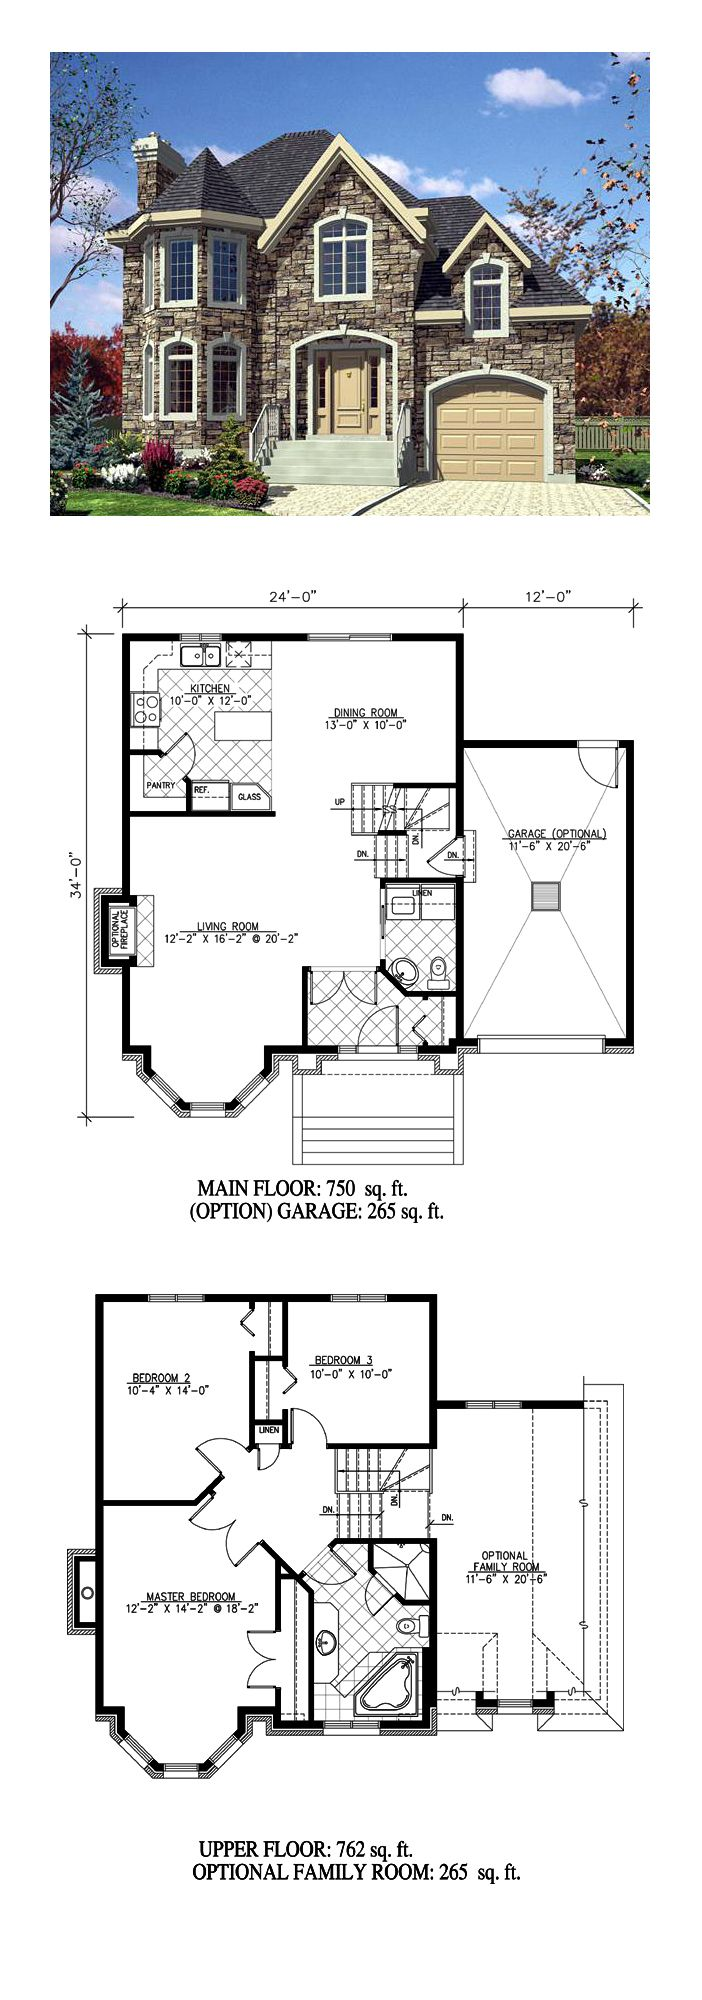 sims 3 family house blueprints. Victorian House Plan 48188  Sims 4 PlansSims 2 HouseFamily 49 best Plans images on Pinterest houses